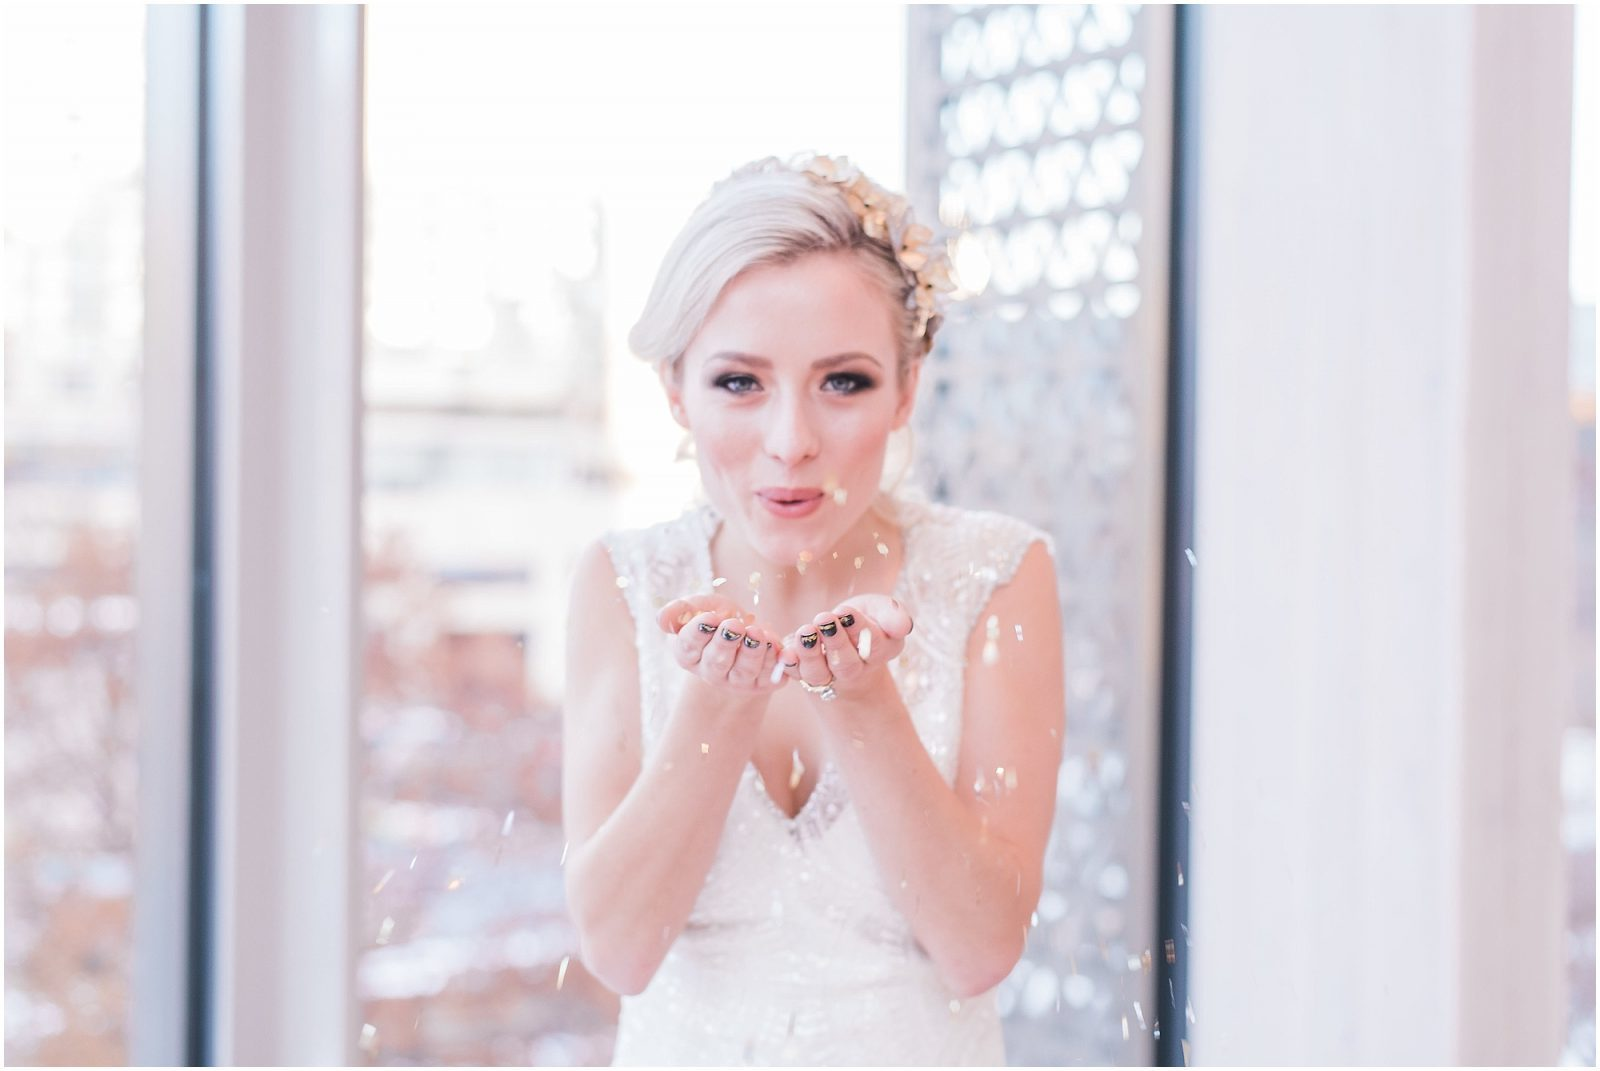 Wedding O'Born Room NAC Ottawa - New Years Glam Wedding Inspiration - bright and airy ottawa wedding photographer - elegant bride blowing sparkles